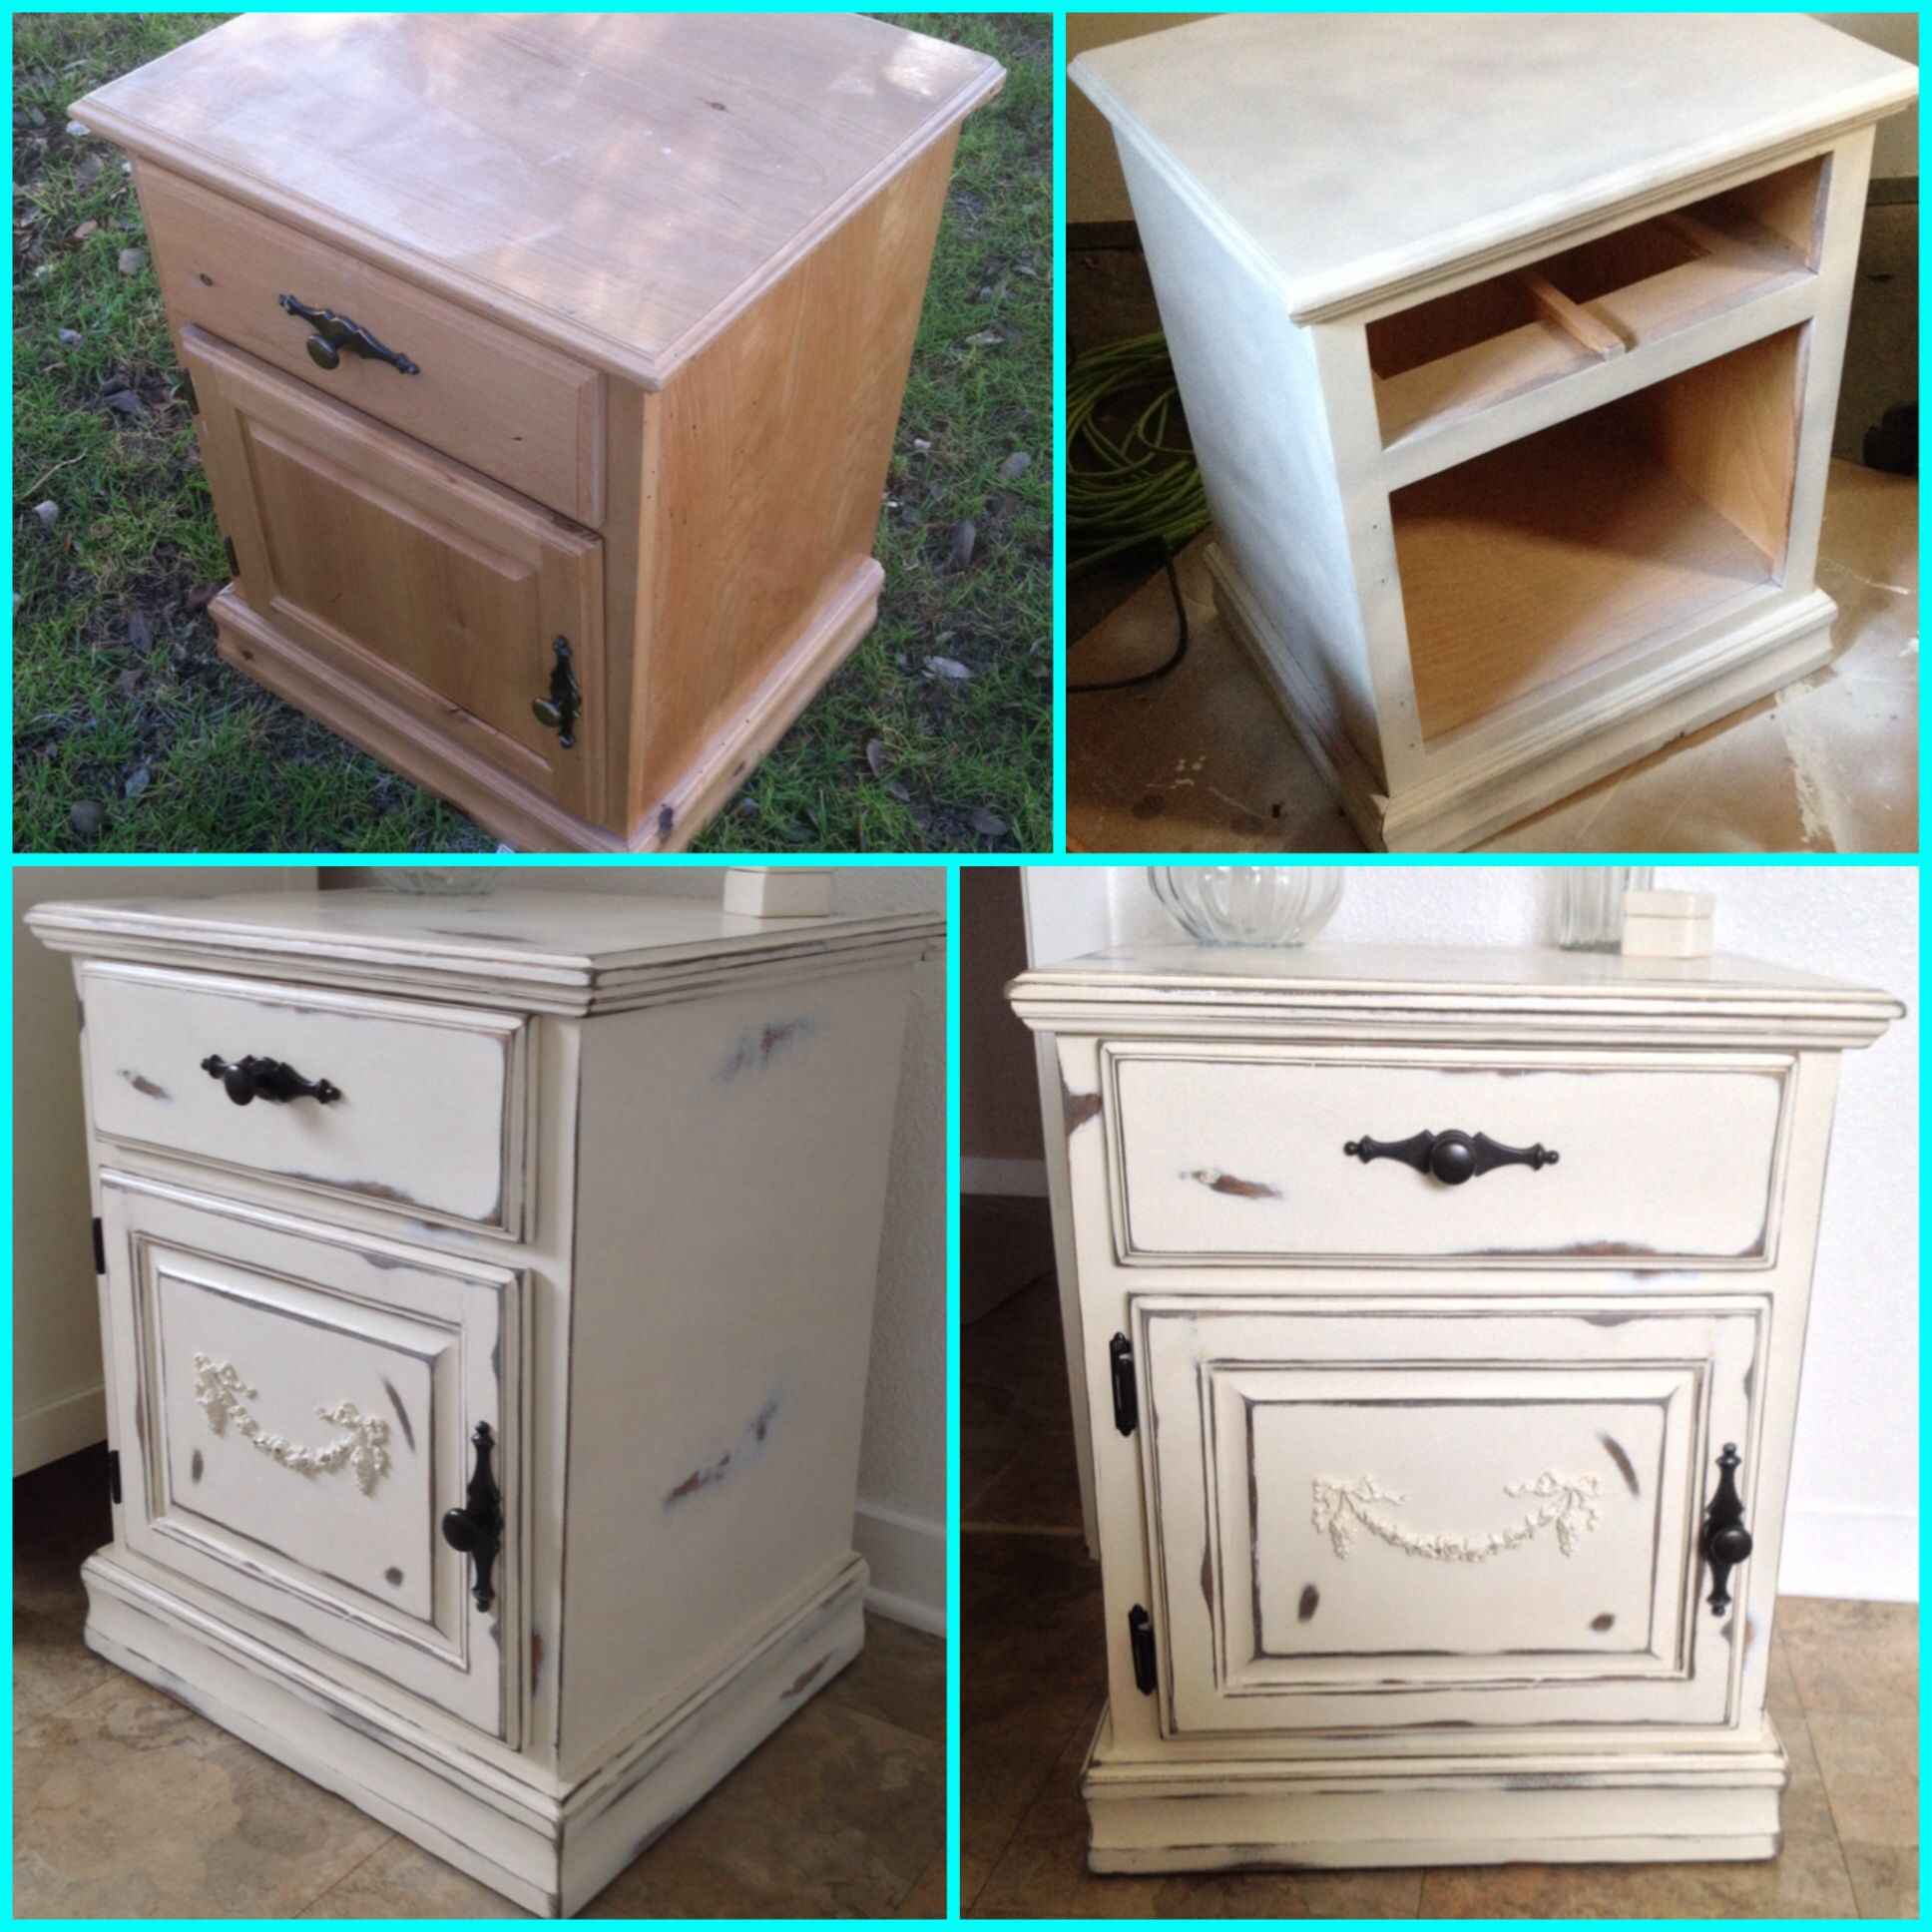 My Diy Shabby Chic Nightstand Furniture Makeover Painted Wood Furniture Distressed Paint Shabby Chic Nightstand Shabby Furniture Shabby Chic Furniture Diy